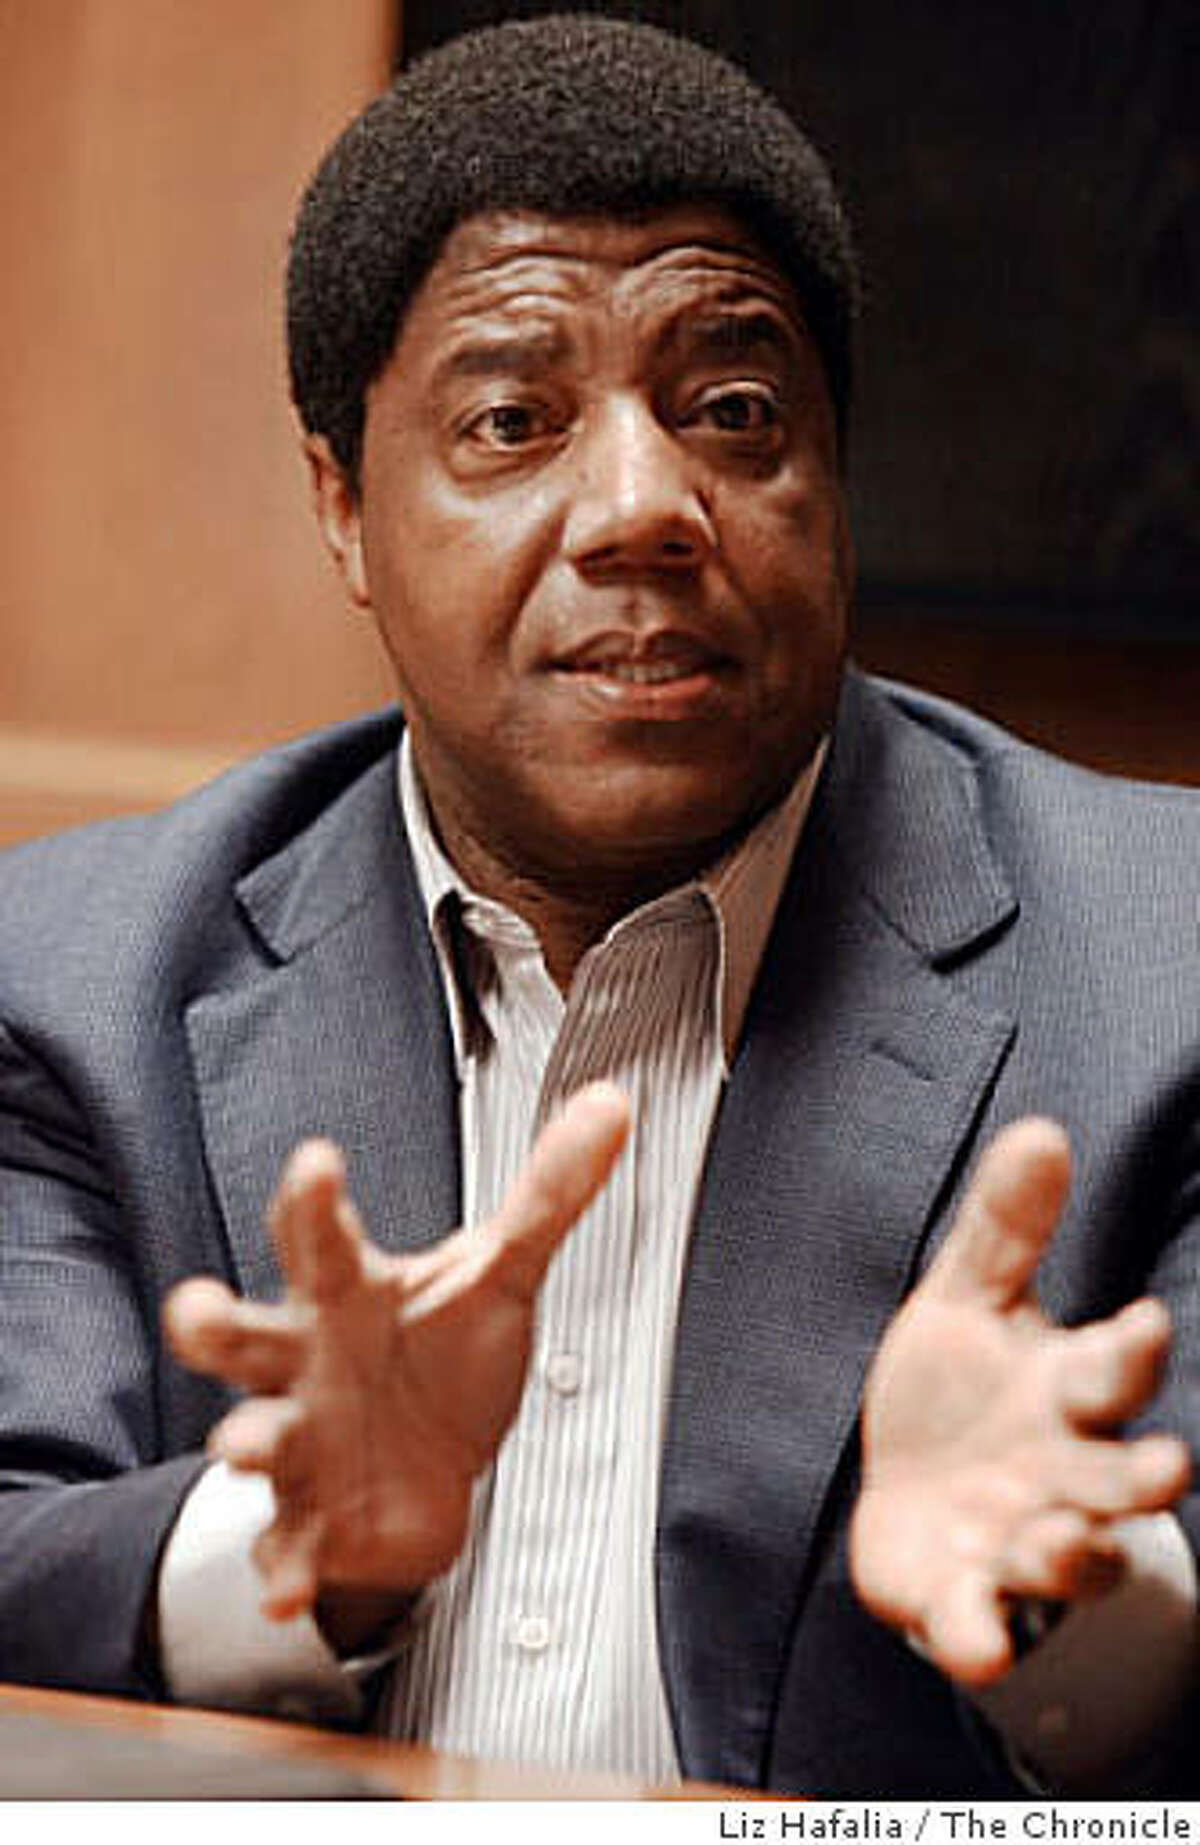 Chief executive officer Lloyd Dean of Catholic Healthcare West in San Francisco, Calif., on monday, October 20, 2008.